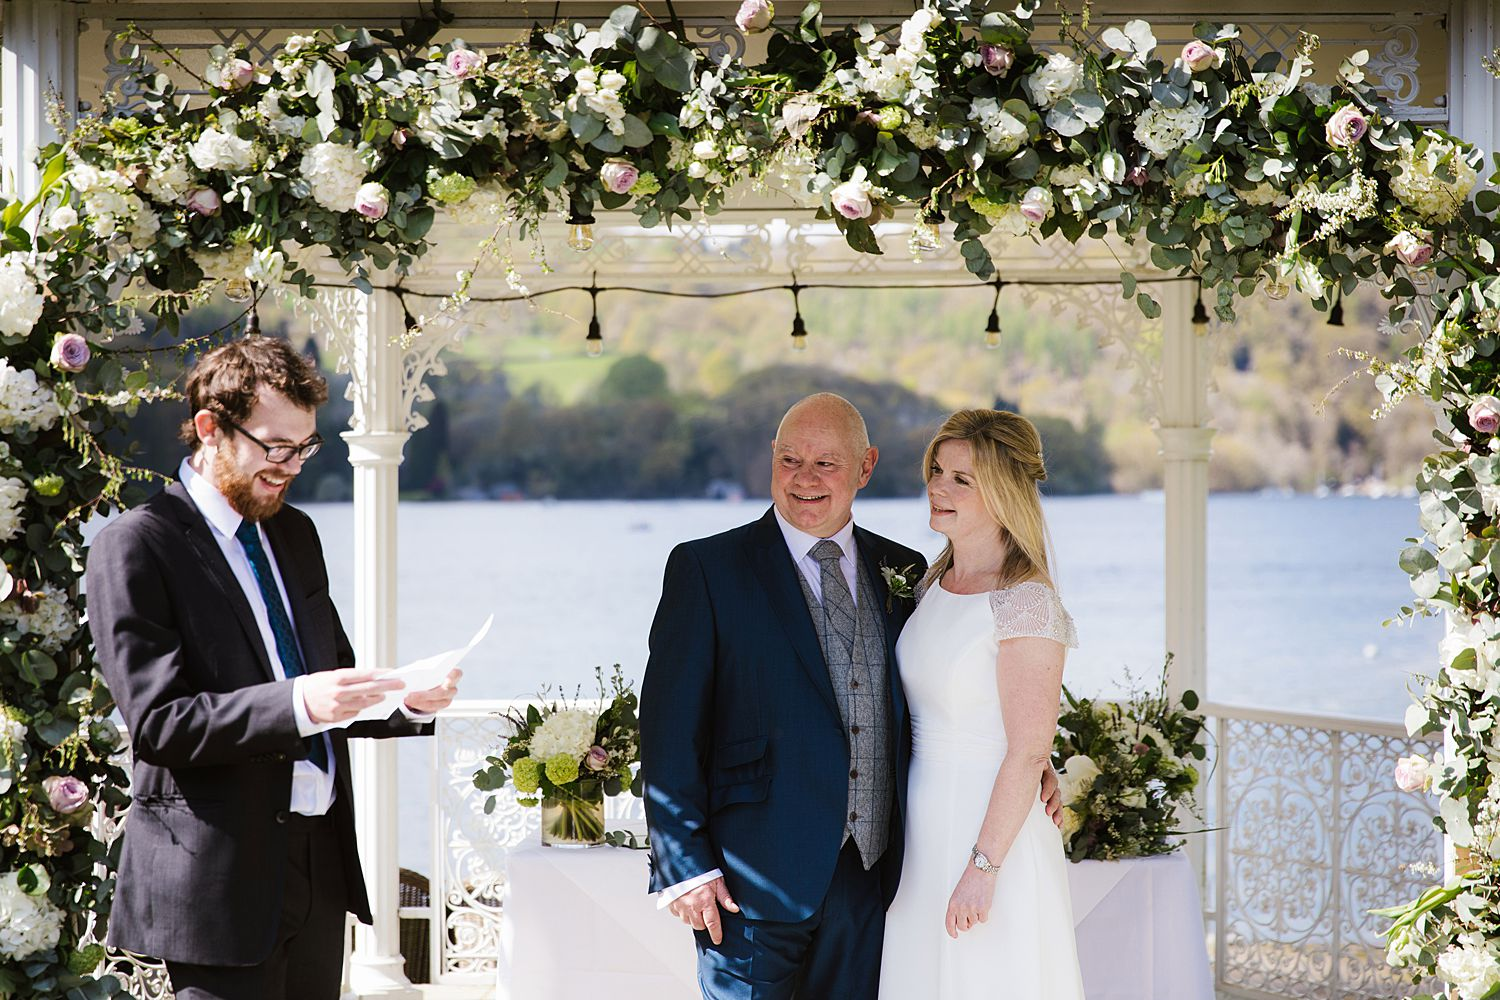 Bride and groom in outdoor ceremony at Storrs Hall hotel, overlooking Lake Windermere